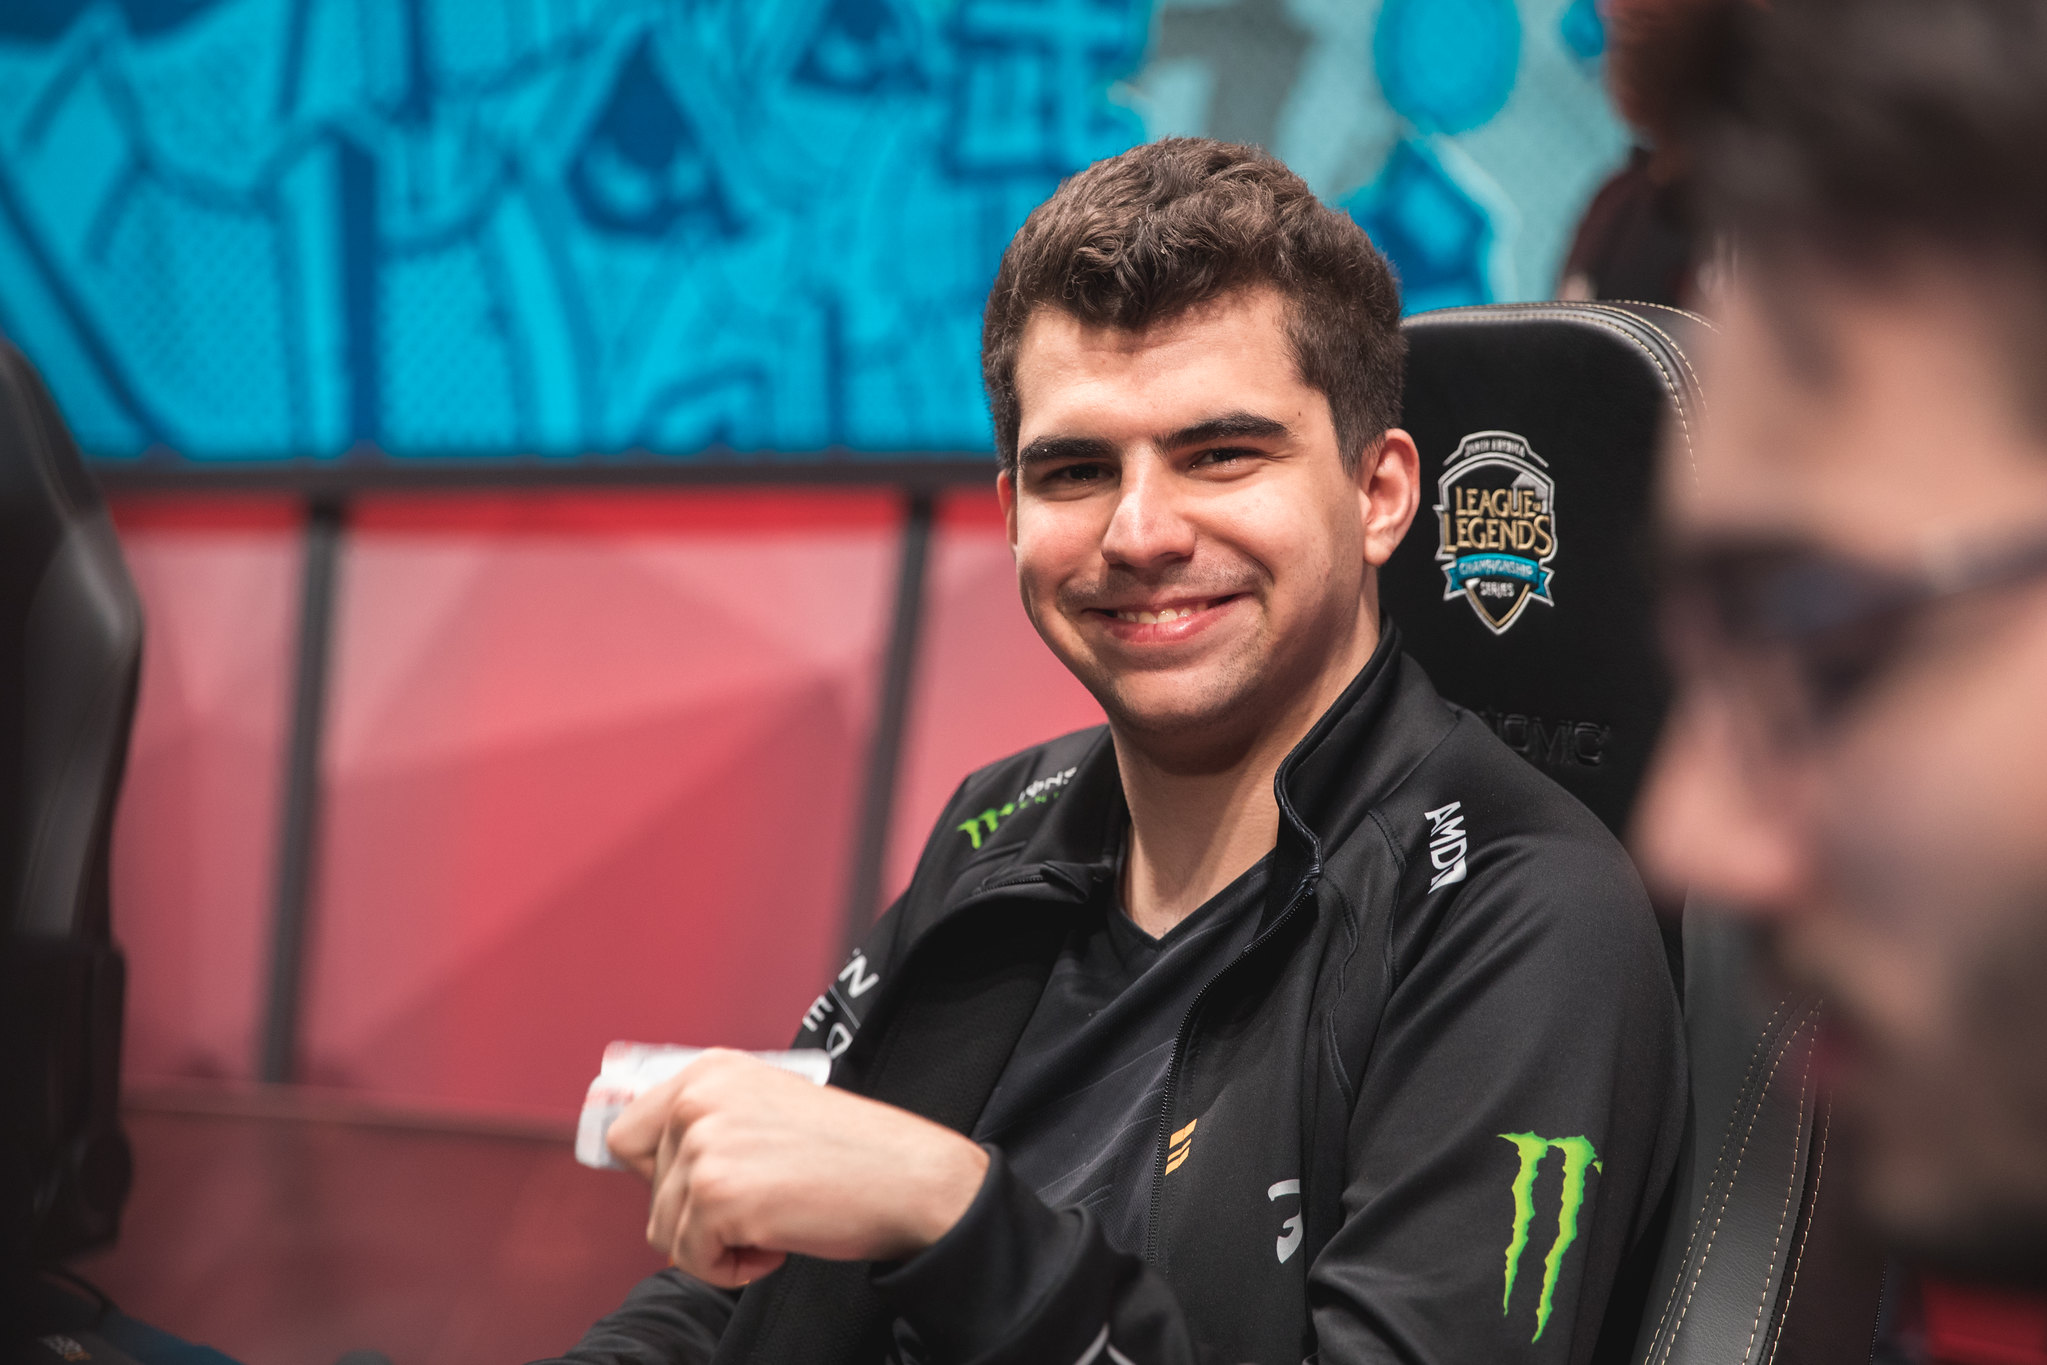 Fnatic's Top Laner, Bwipo, Says Map Movement Is Foreign To Most Western Solo Queue Players